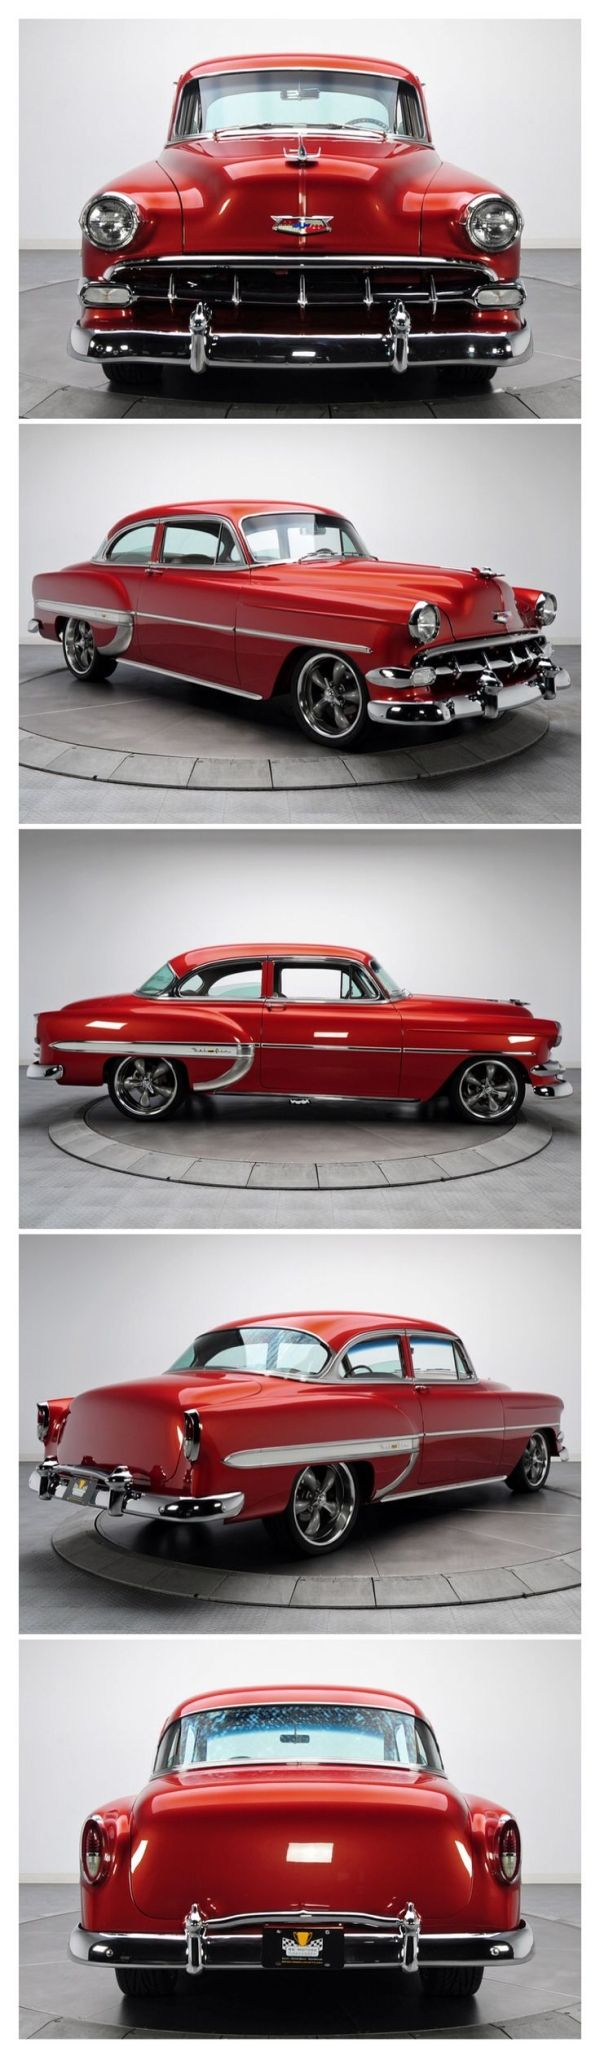 1954 Chevrolet Bel Air by helen Classic cars, Chevrolet